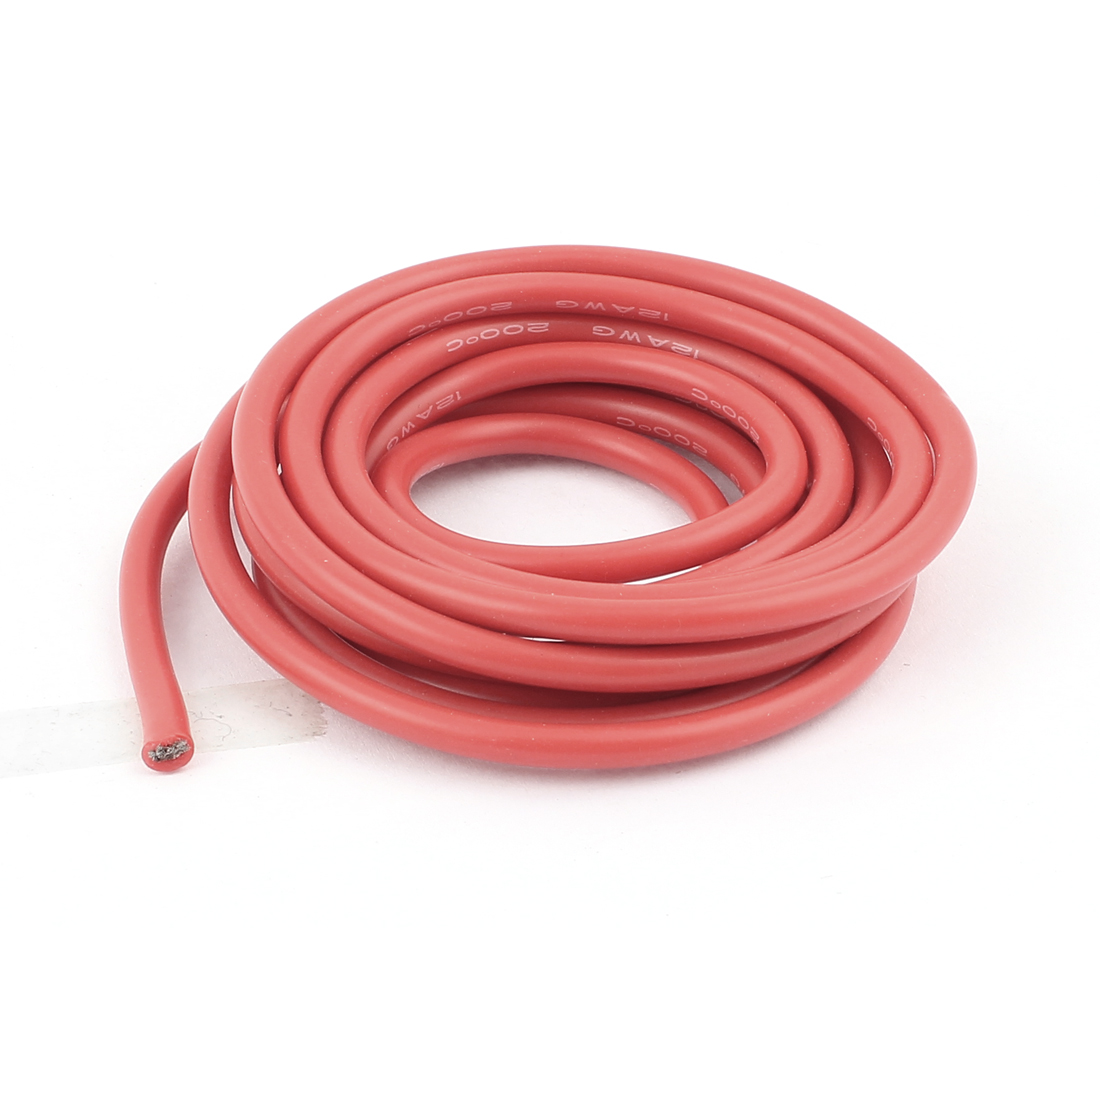 2M 12AWG Electric Copper Core Flexible Silicone Wire Cable Red